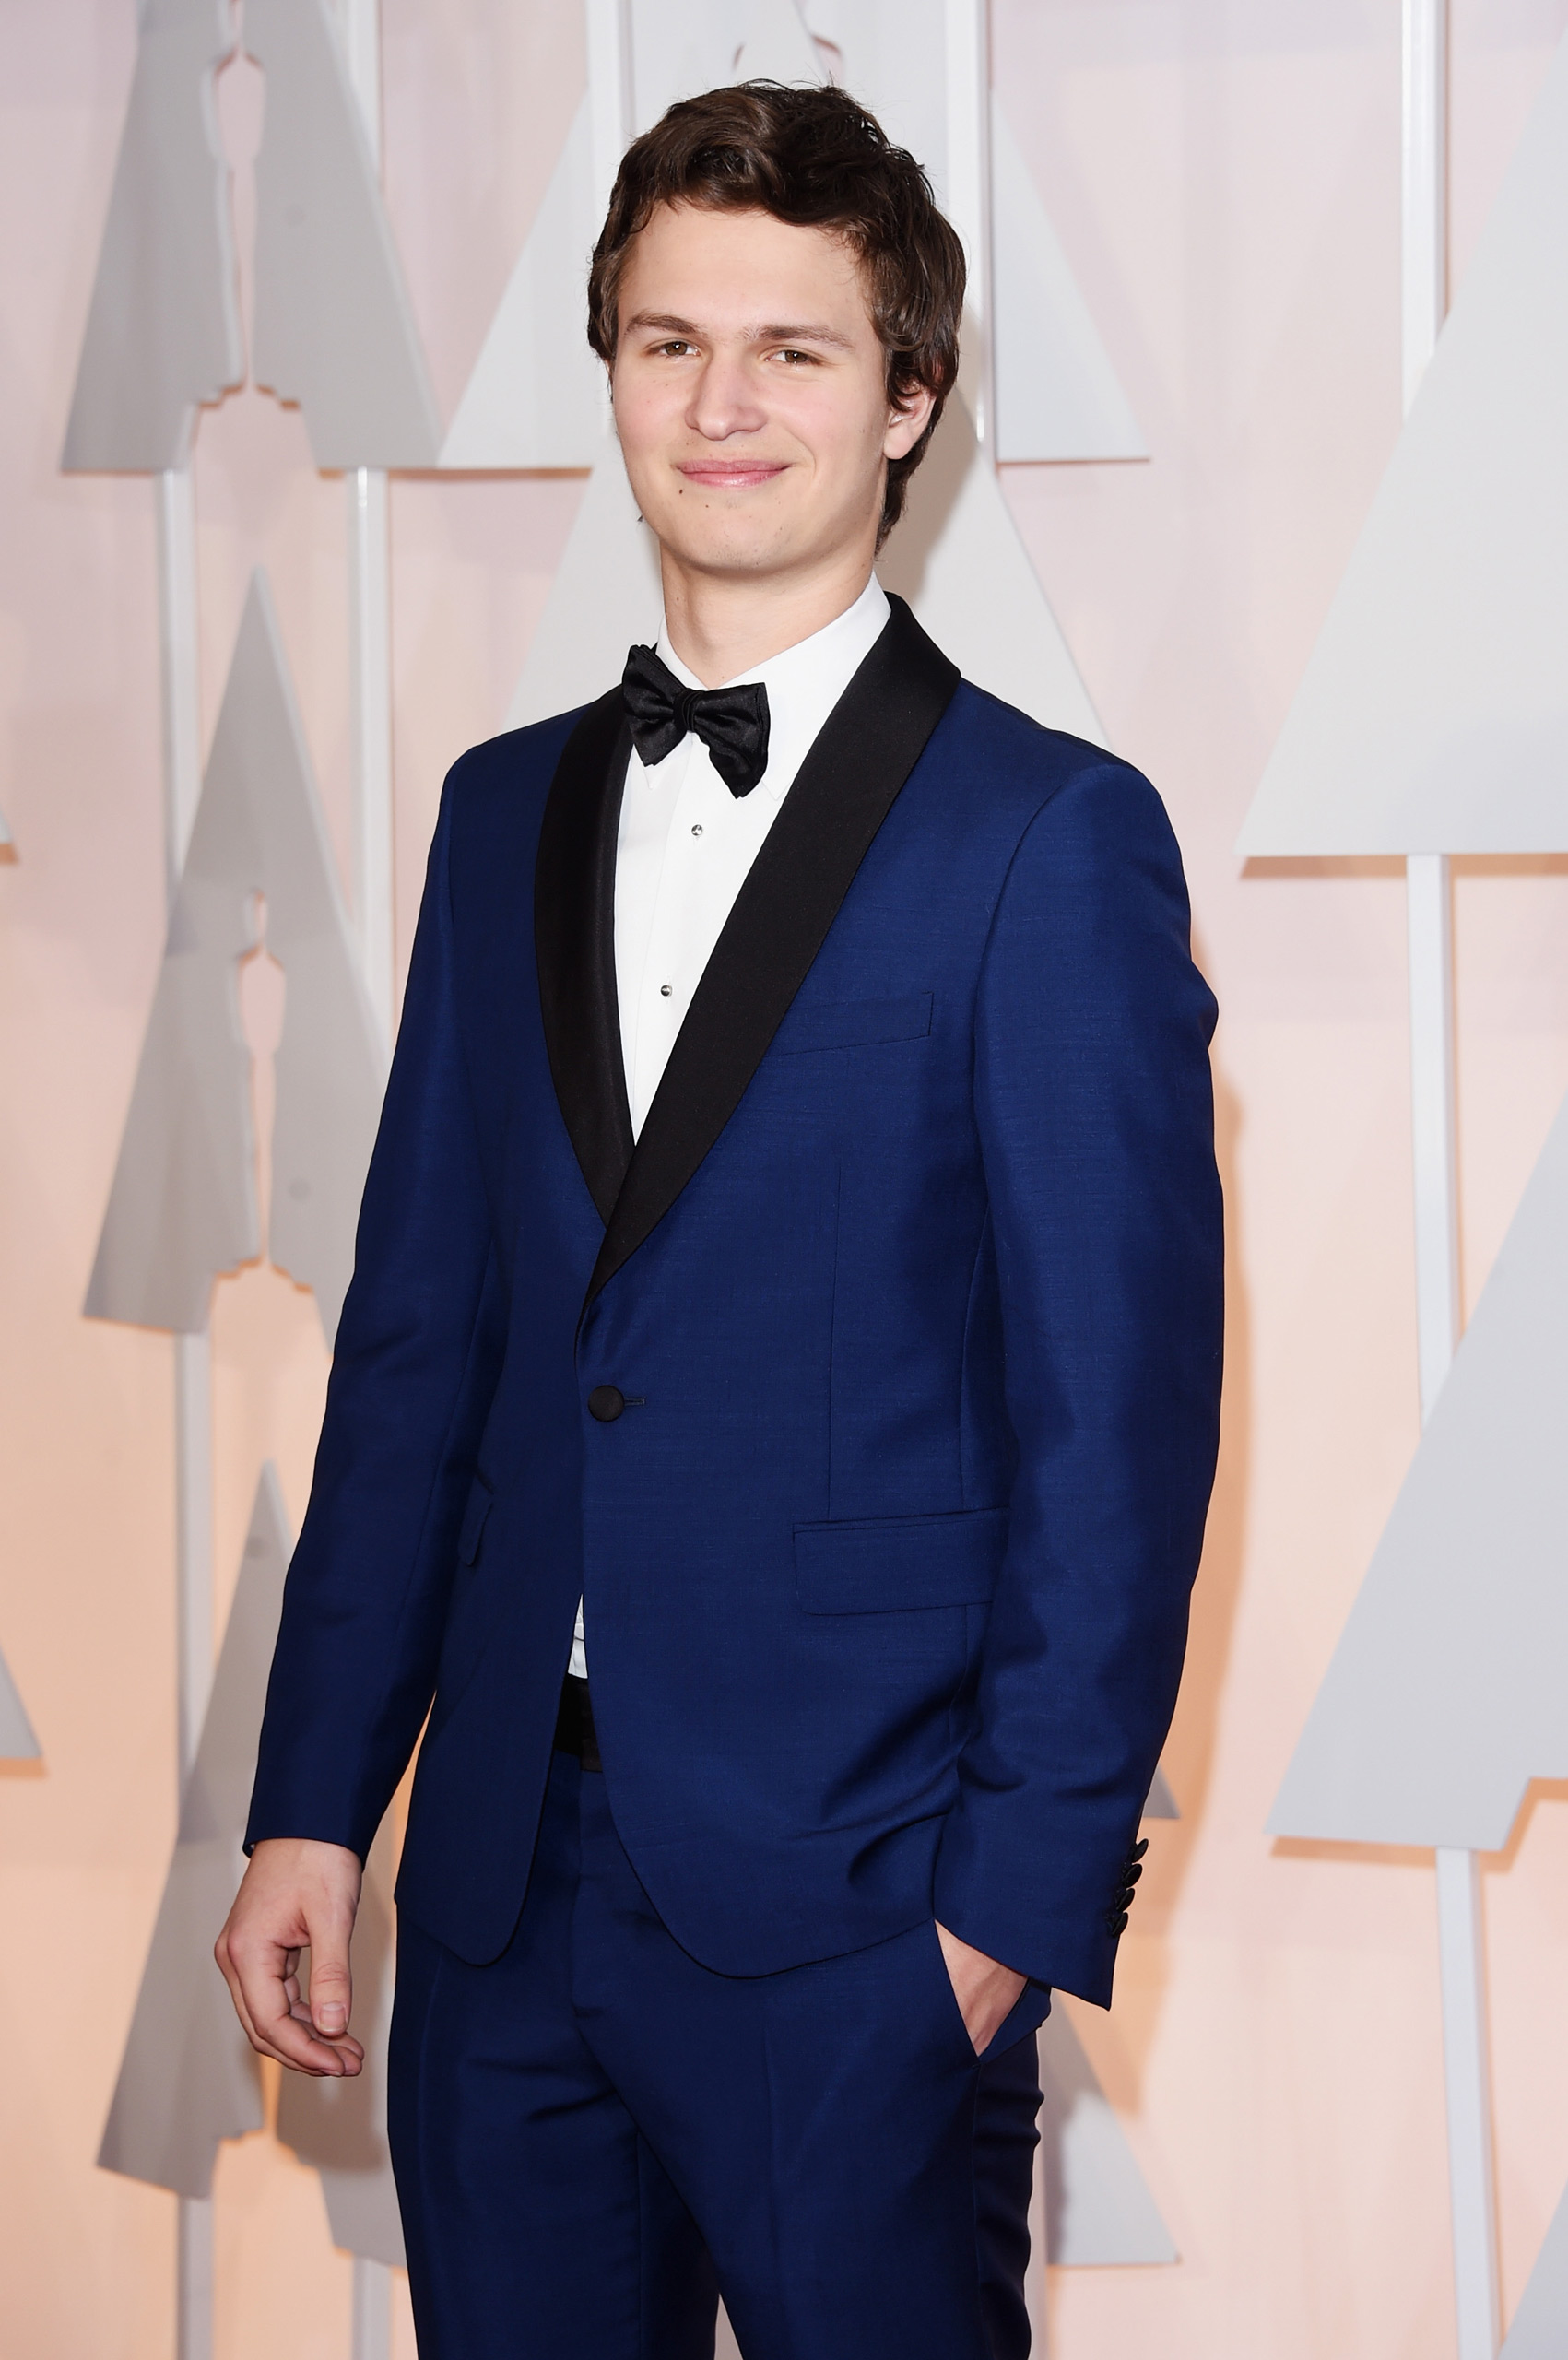 Ansel Elgort attends the 87th Annual Academy Awards on Feb. 22, 2015 in Hollywood, Calif.